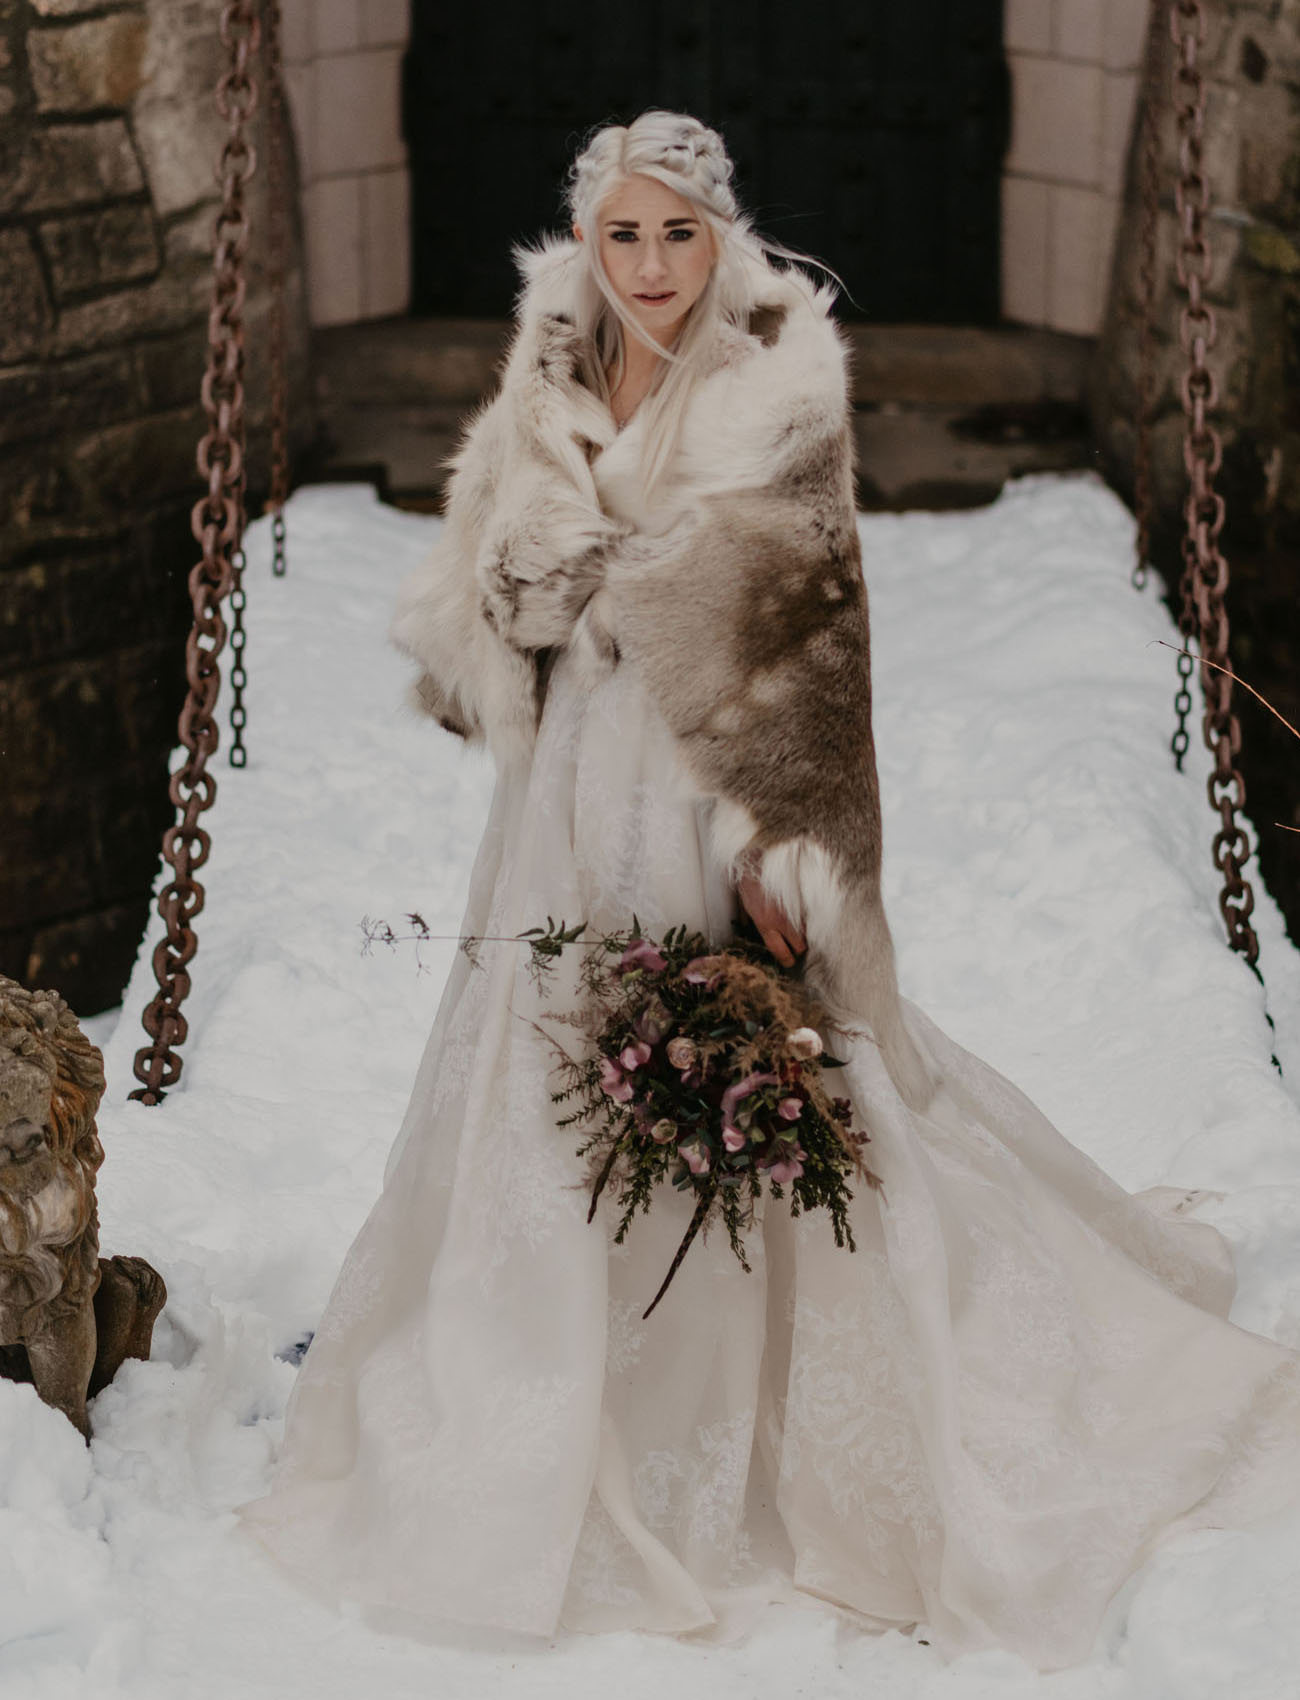 Daenerys styled bride in a lace wedding ballgown, with a braided hairstyle and a fur coverup